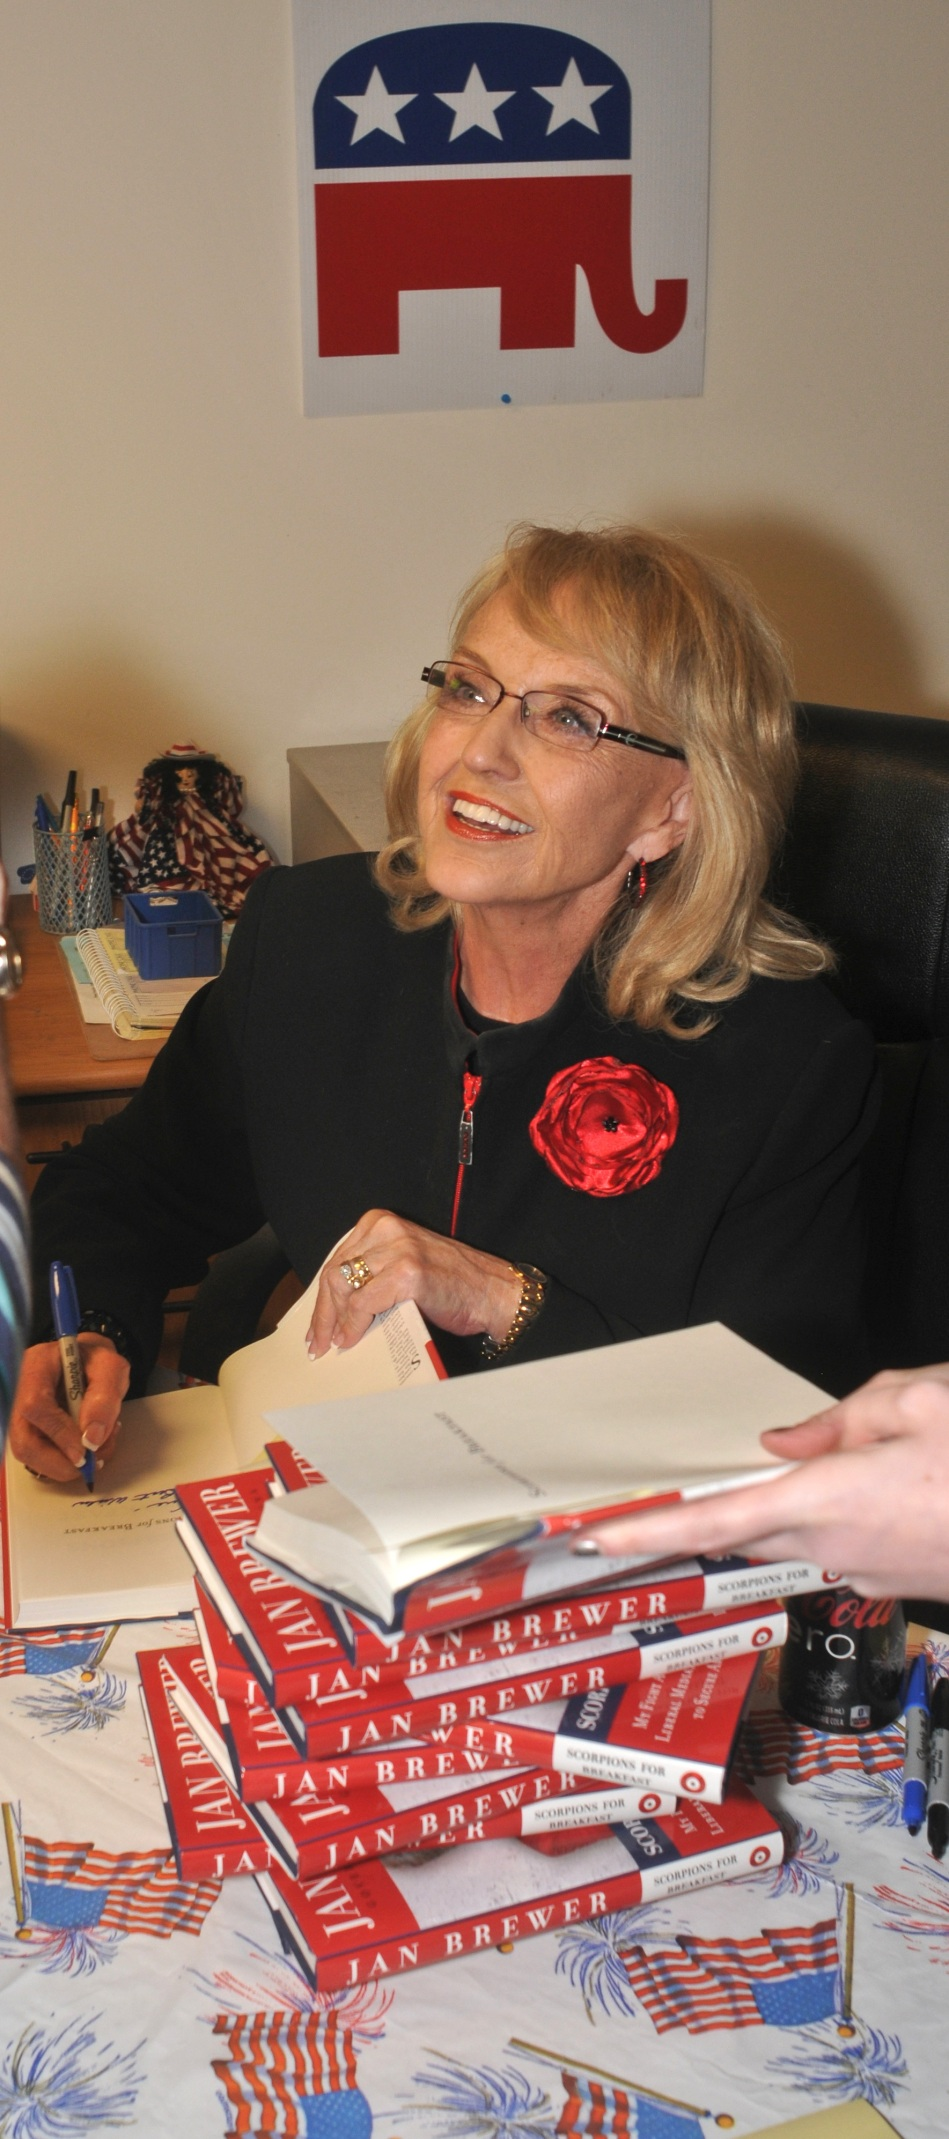 The Arizona Governor enjoyed the book-buyers who came out.